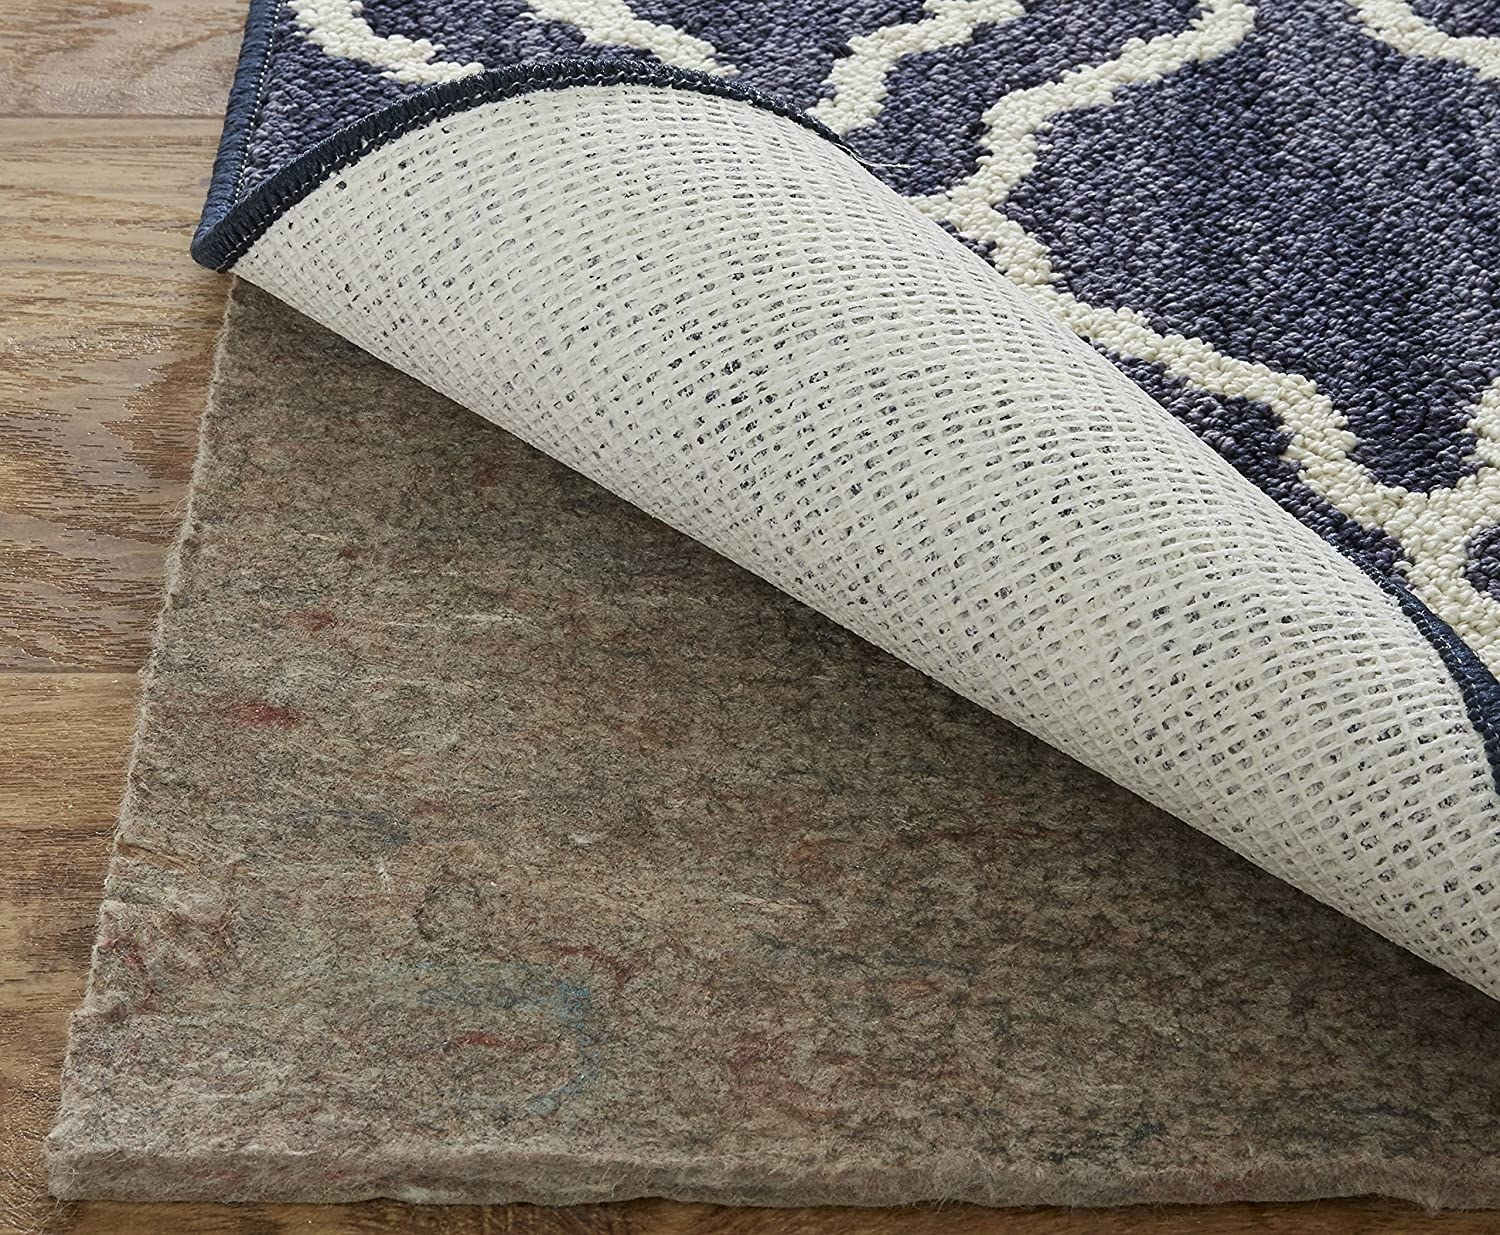 Rug with a gray mat under it